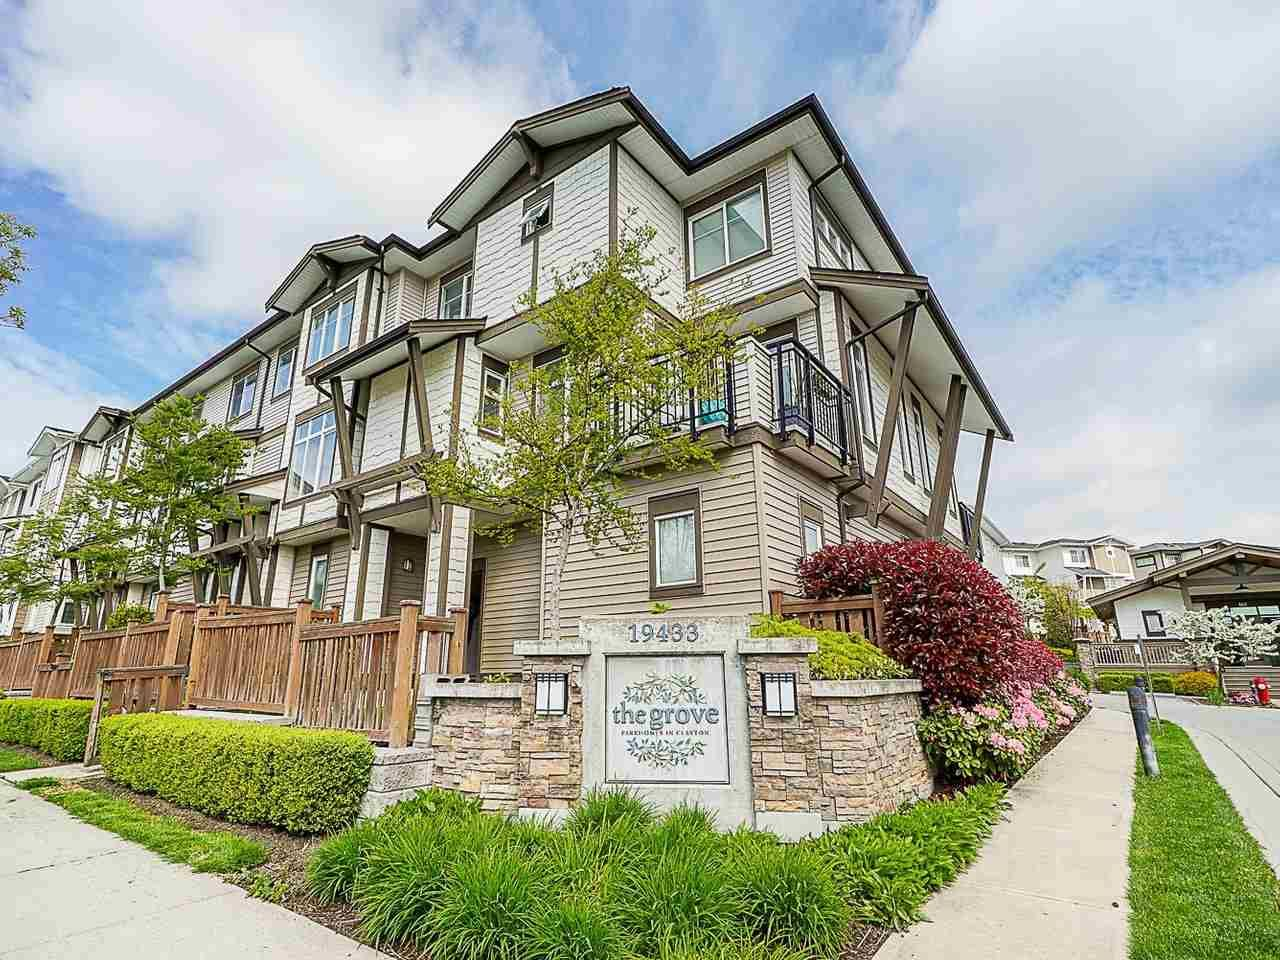 """Main Photo: 89 19433 68 Avenue in Surrey: Clayton Townhouse for sale in """"THE GROVE"""" (Cloverdale)  : MLS®# R2454192"""